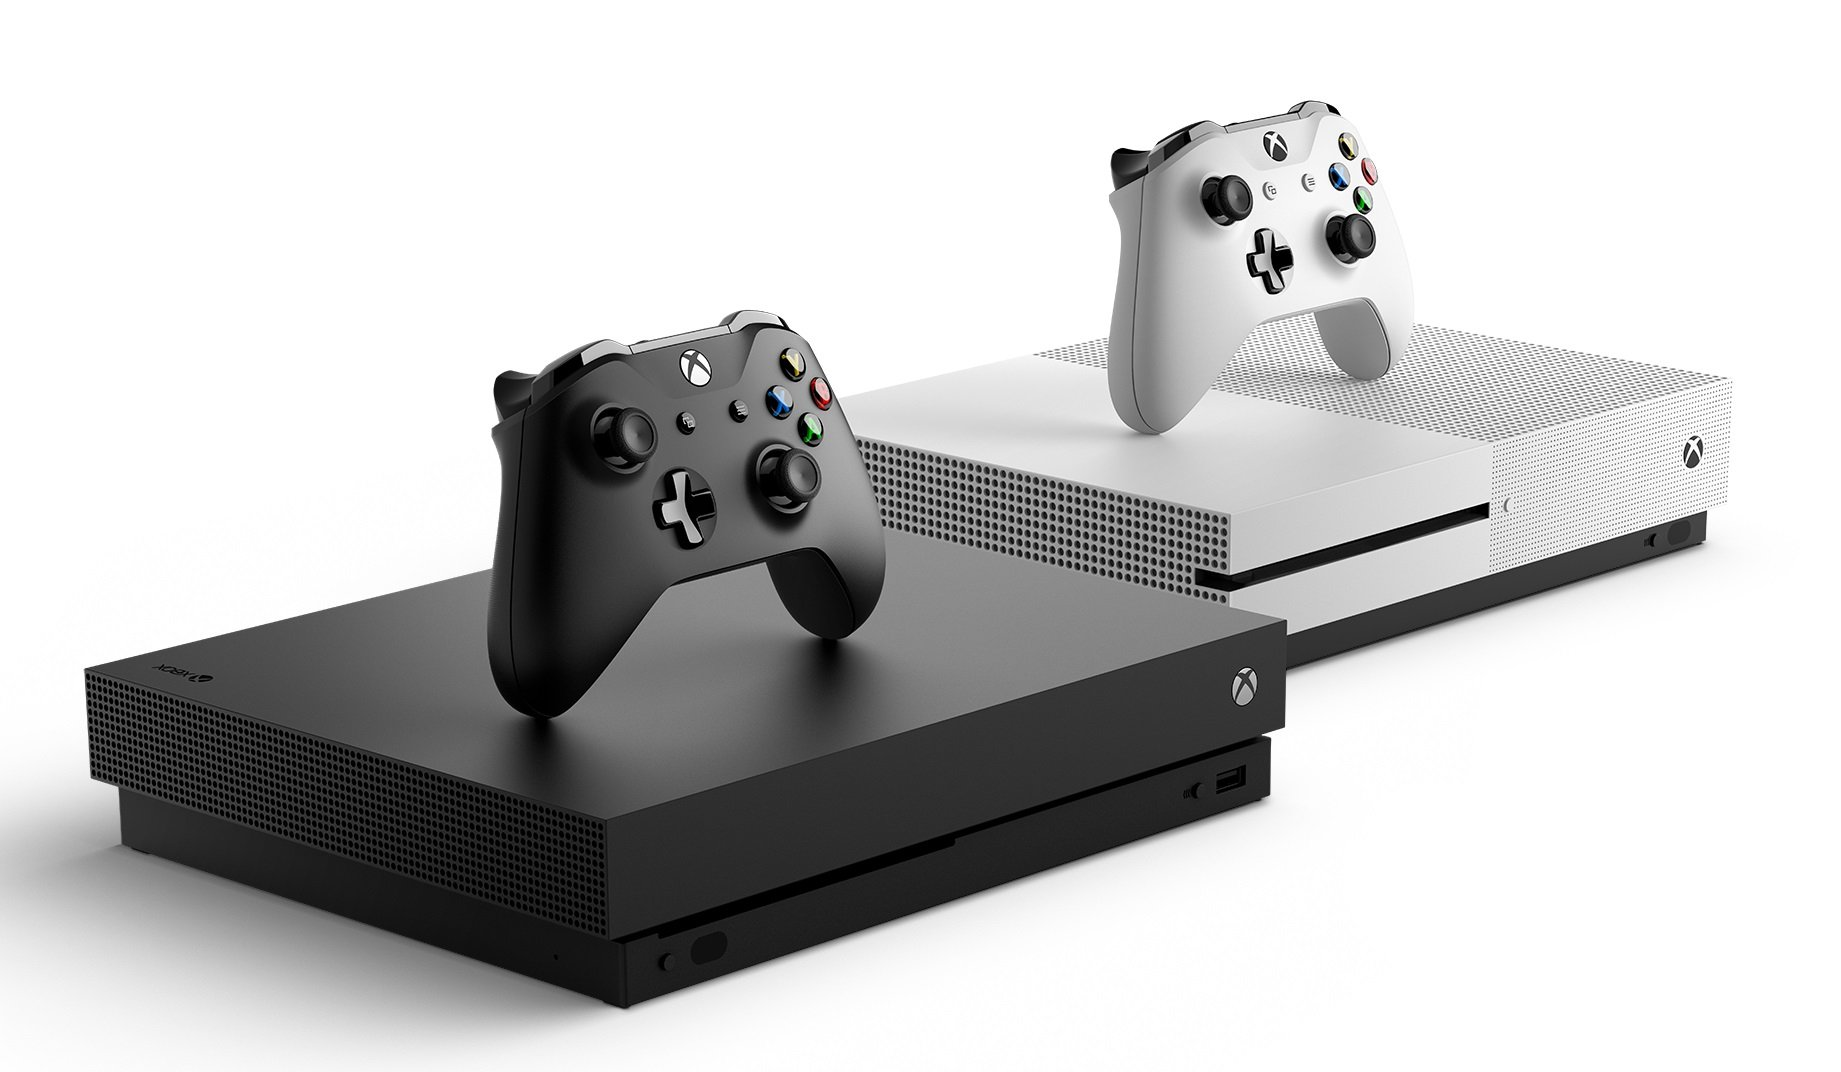 Xbox One S and Xbox One X